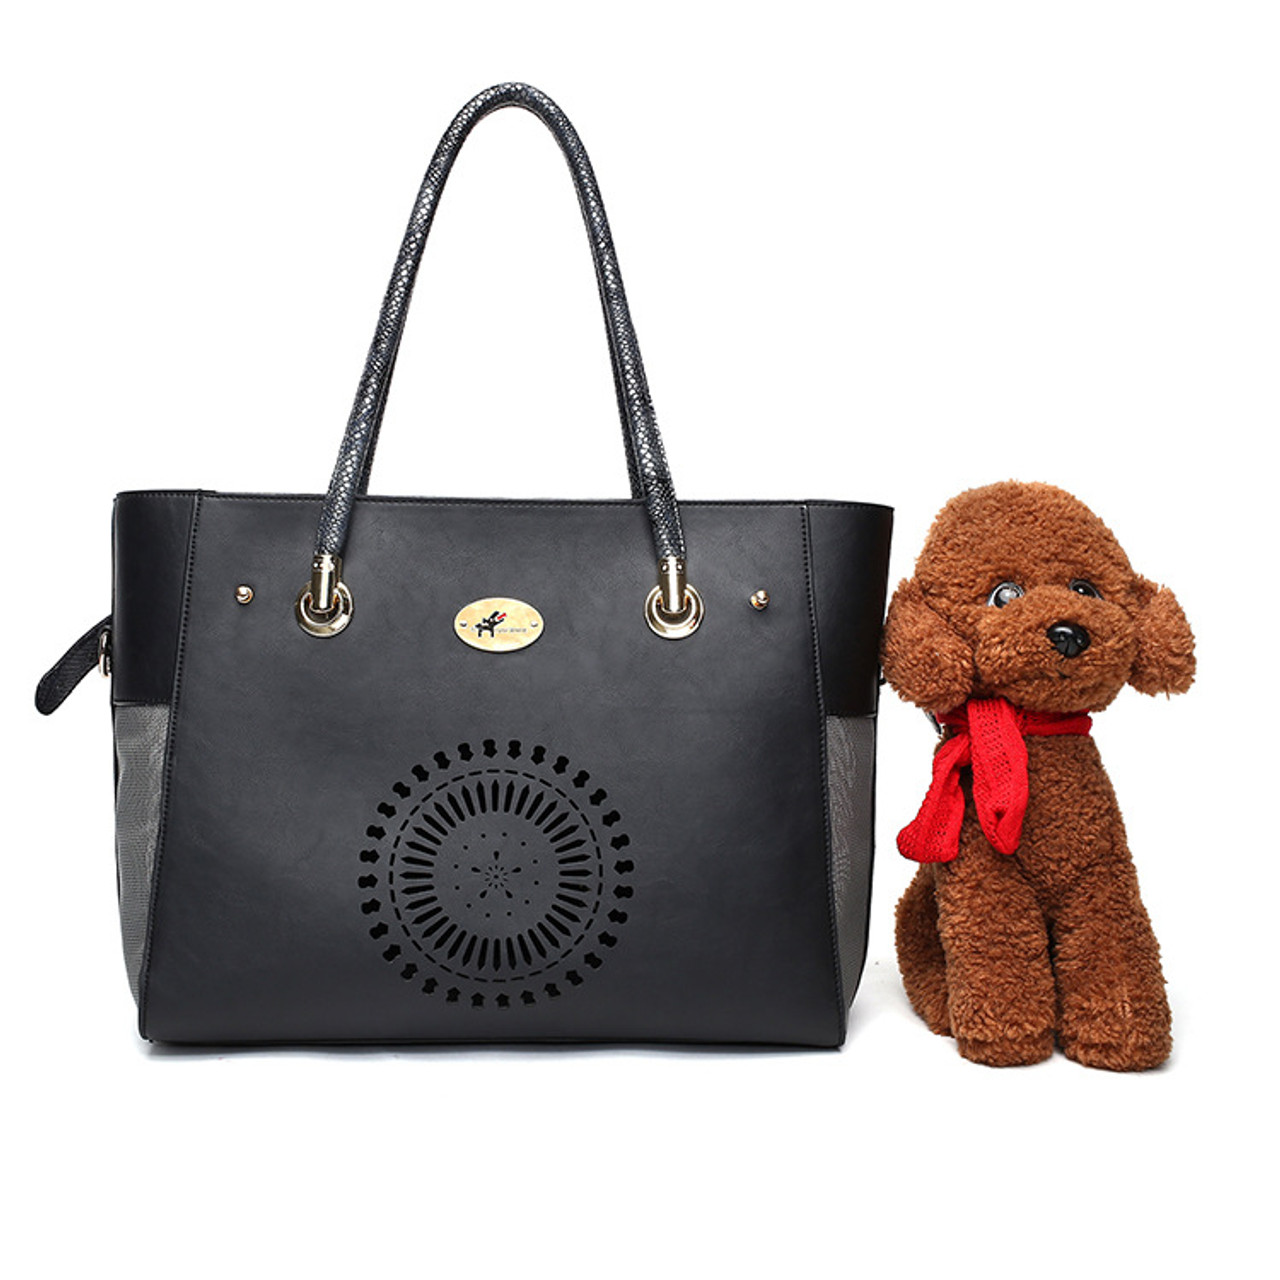 Outdoor Travel Walking Hiking Tote Around Town Pet Carrier Portable Dog  Handbag c0a5f57c54218